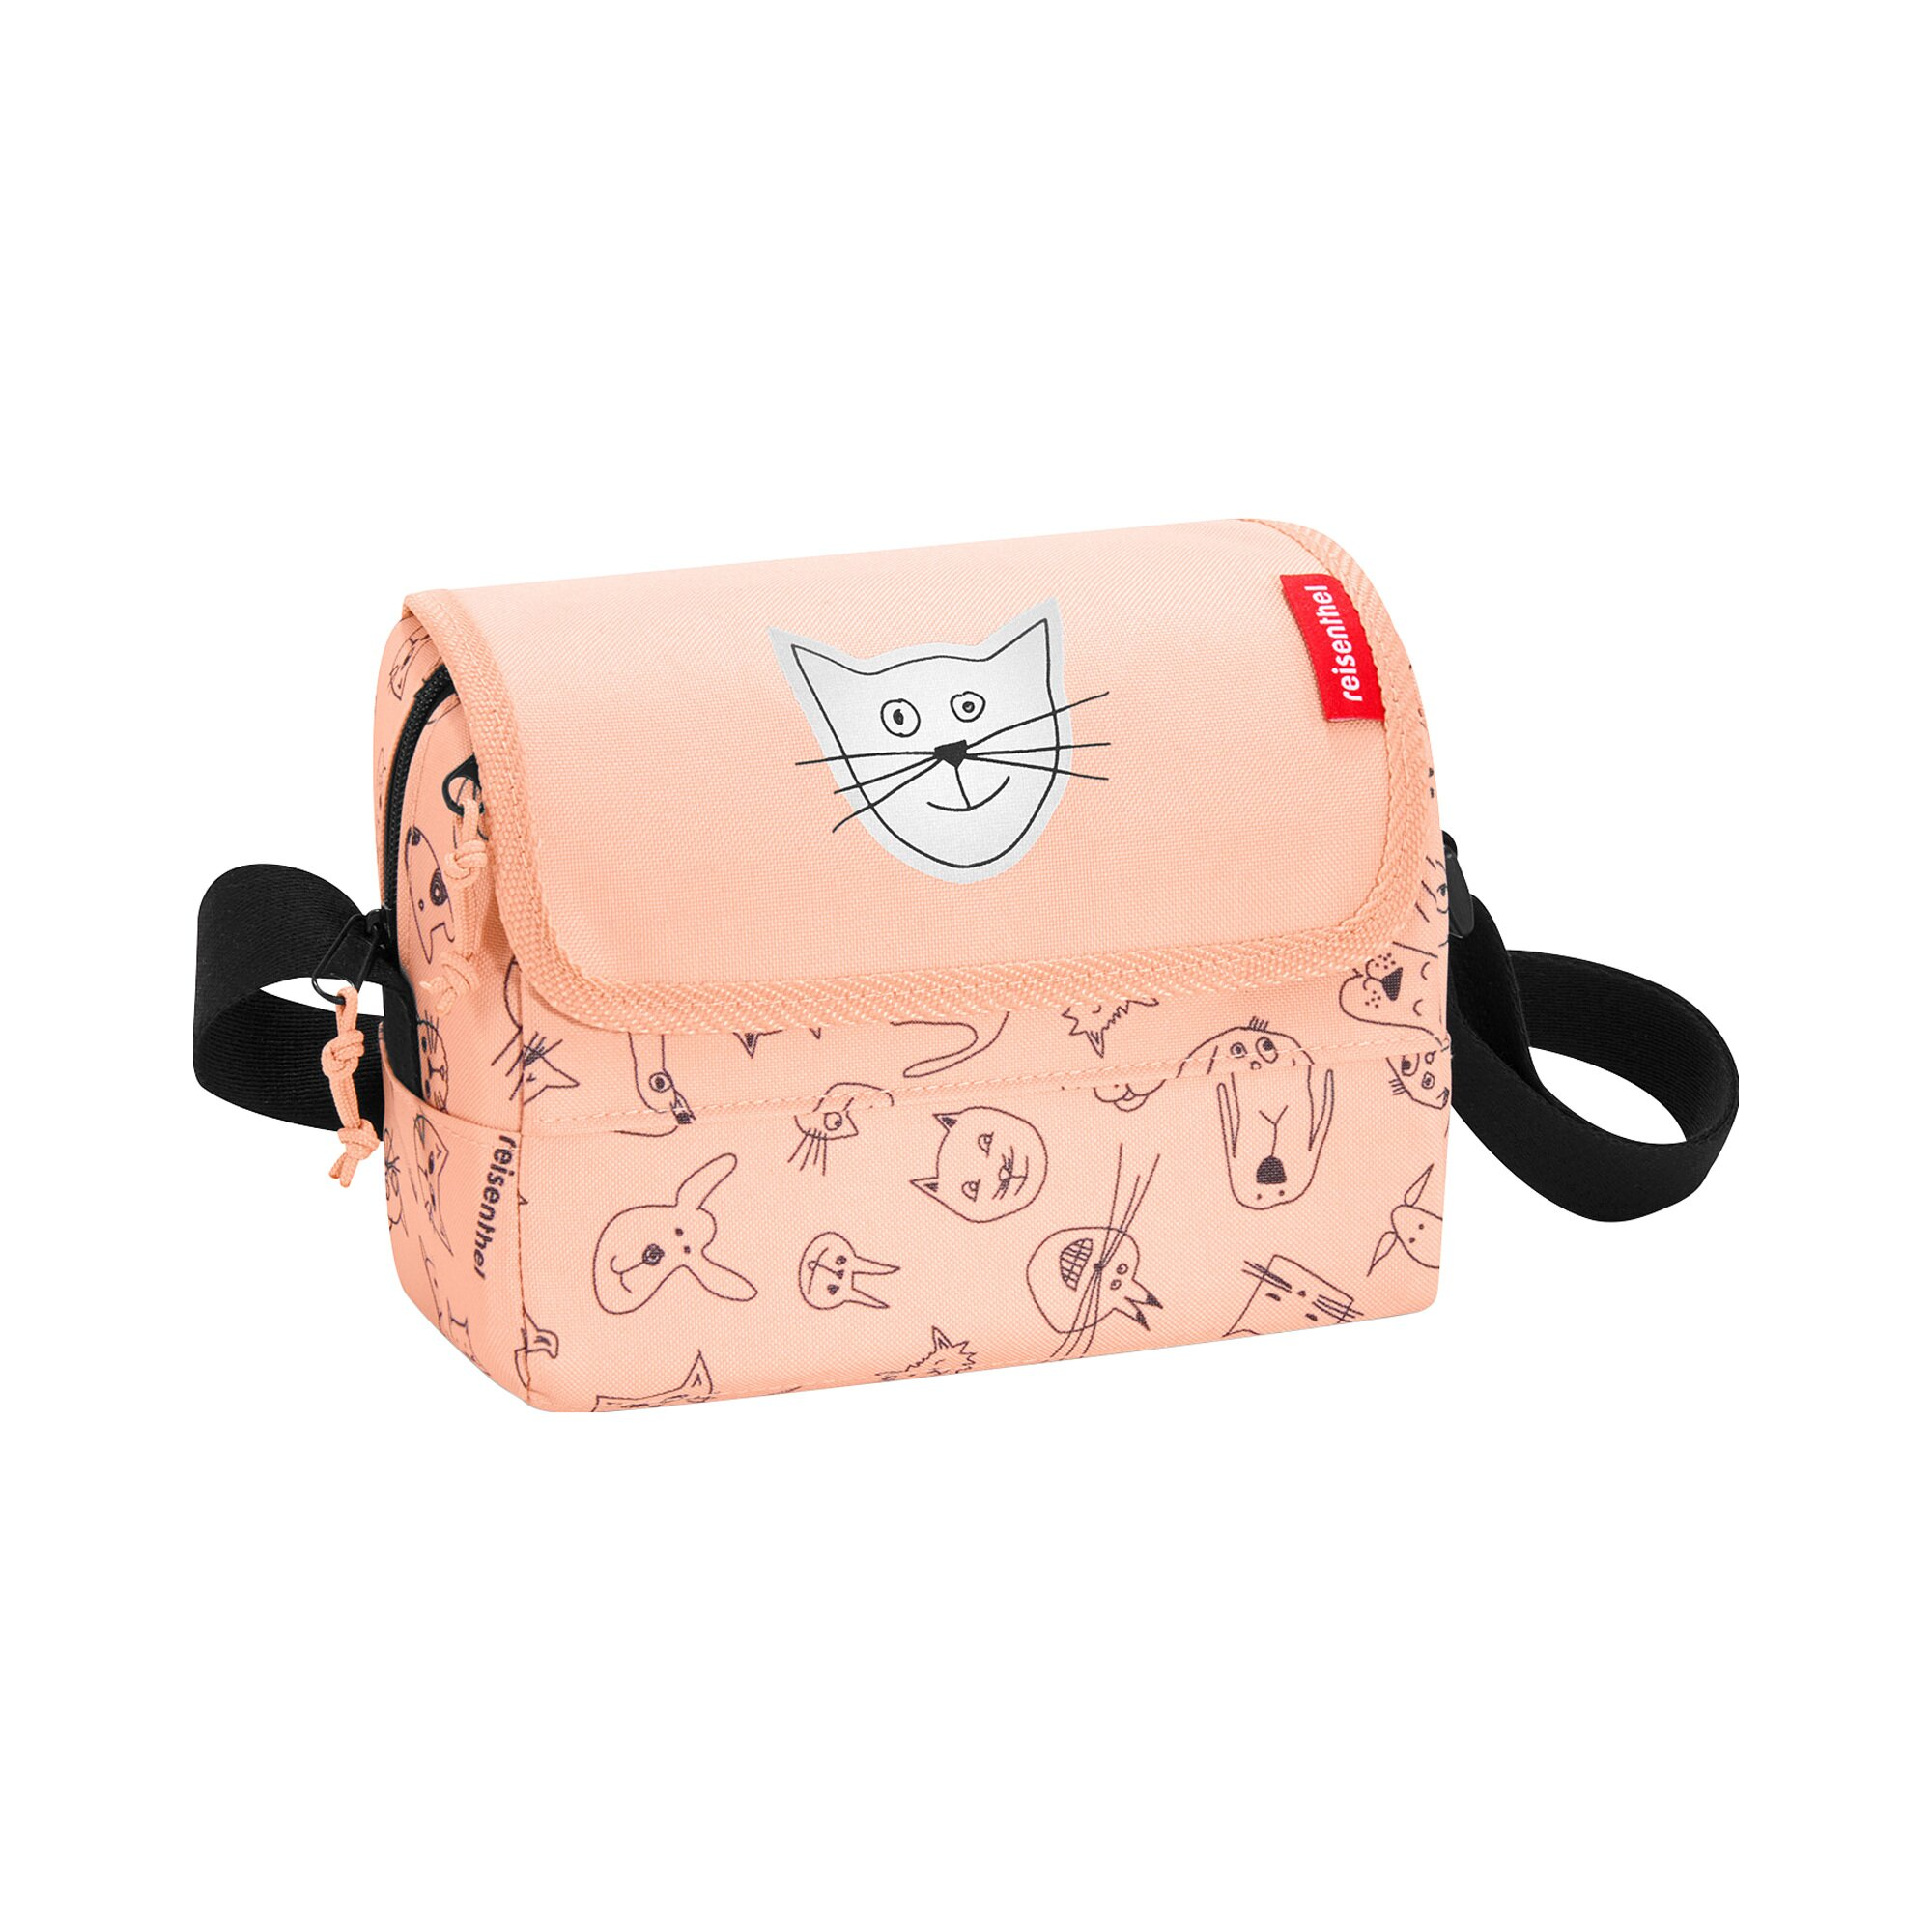 Reisenthel Kids Kinder-Umhängetasche everydaybag kids